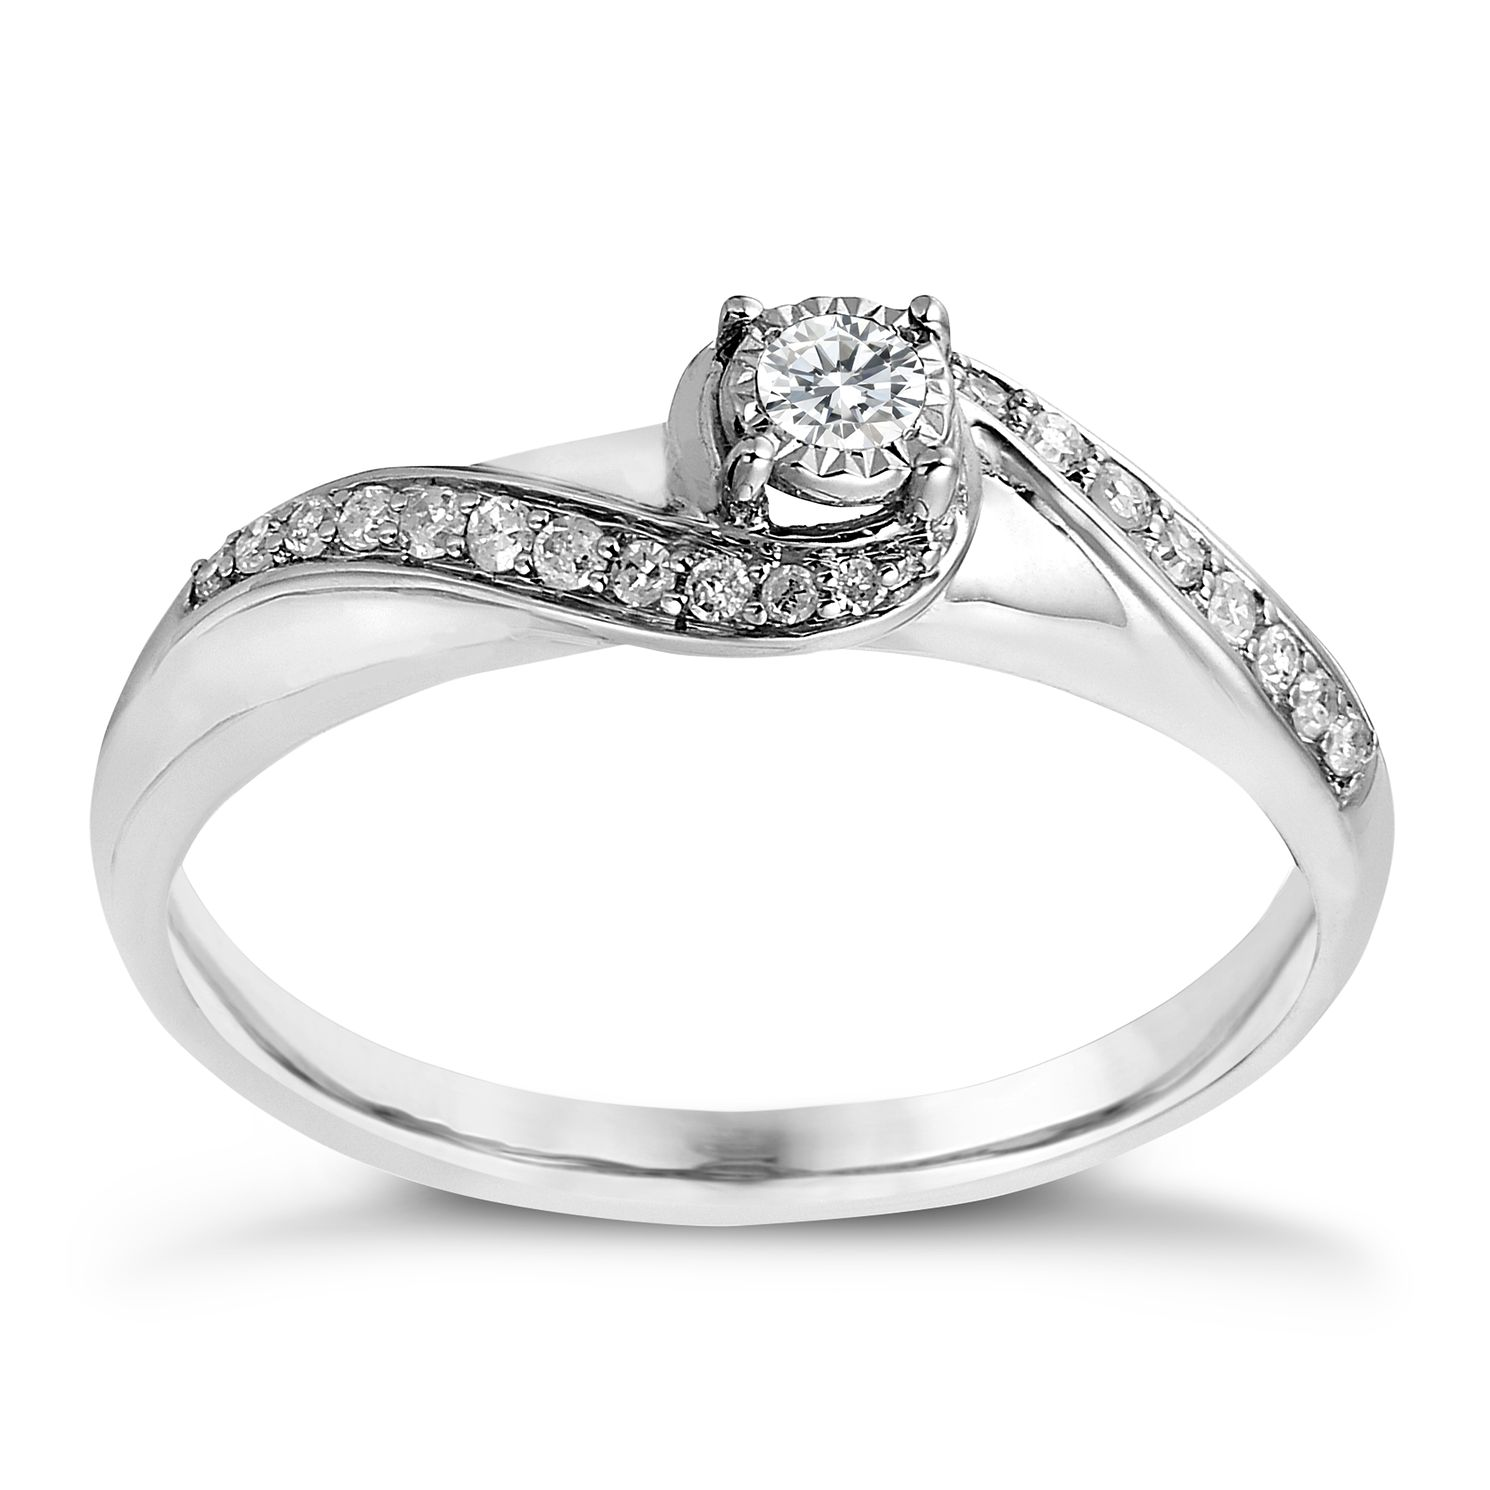 Diamond Engagement Rings Gold & Platinum Ernest Jones